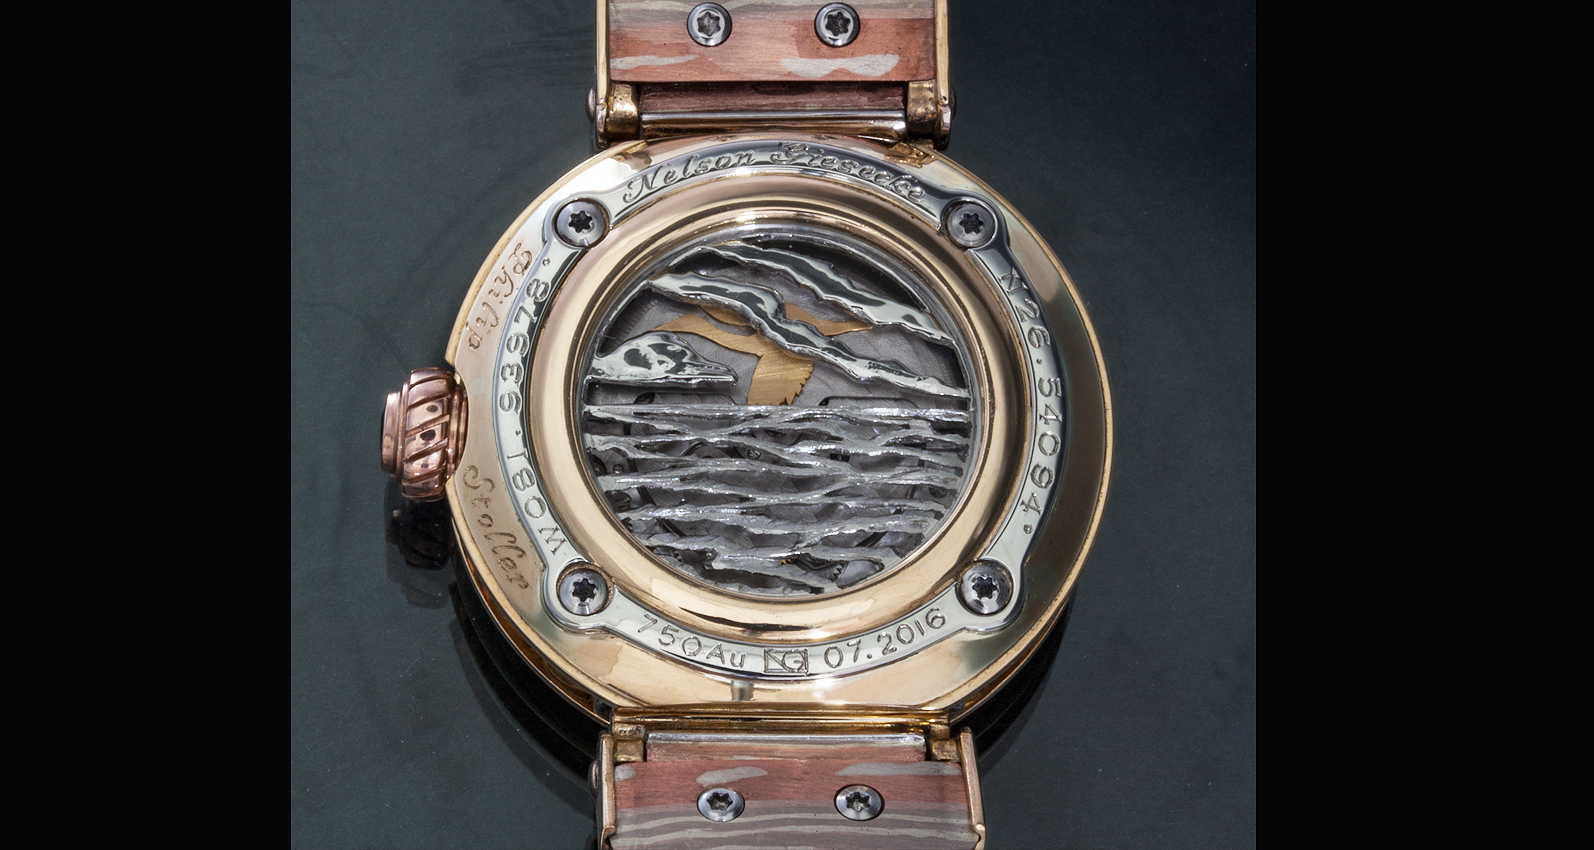 Back of watch with egret emerging on rotor.